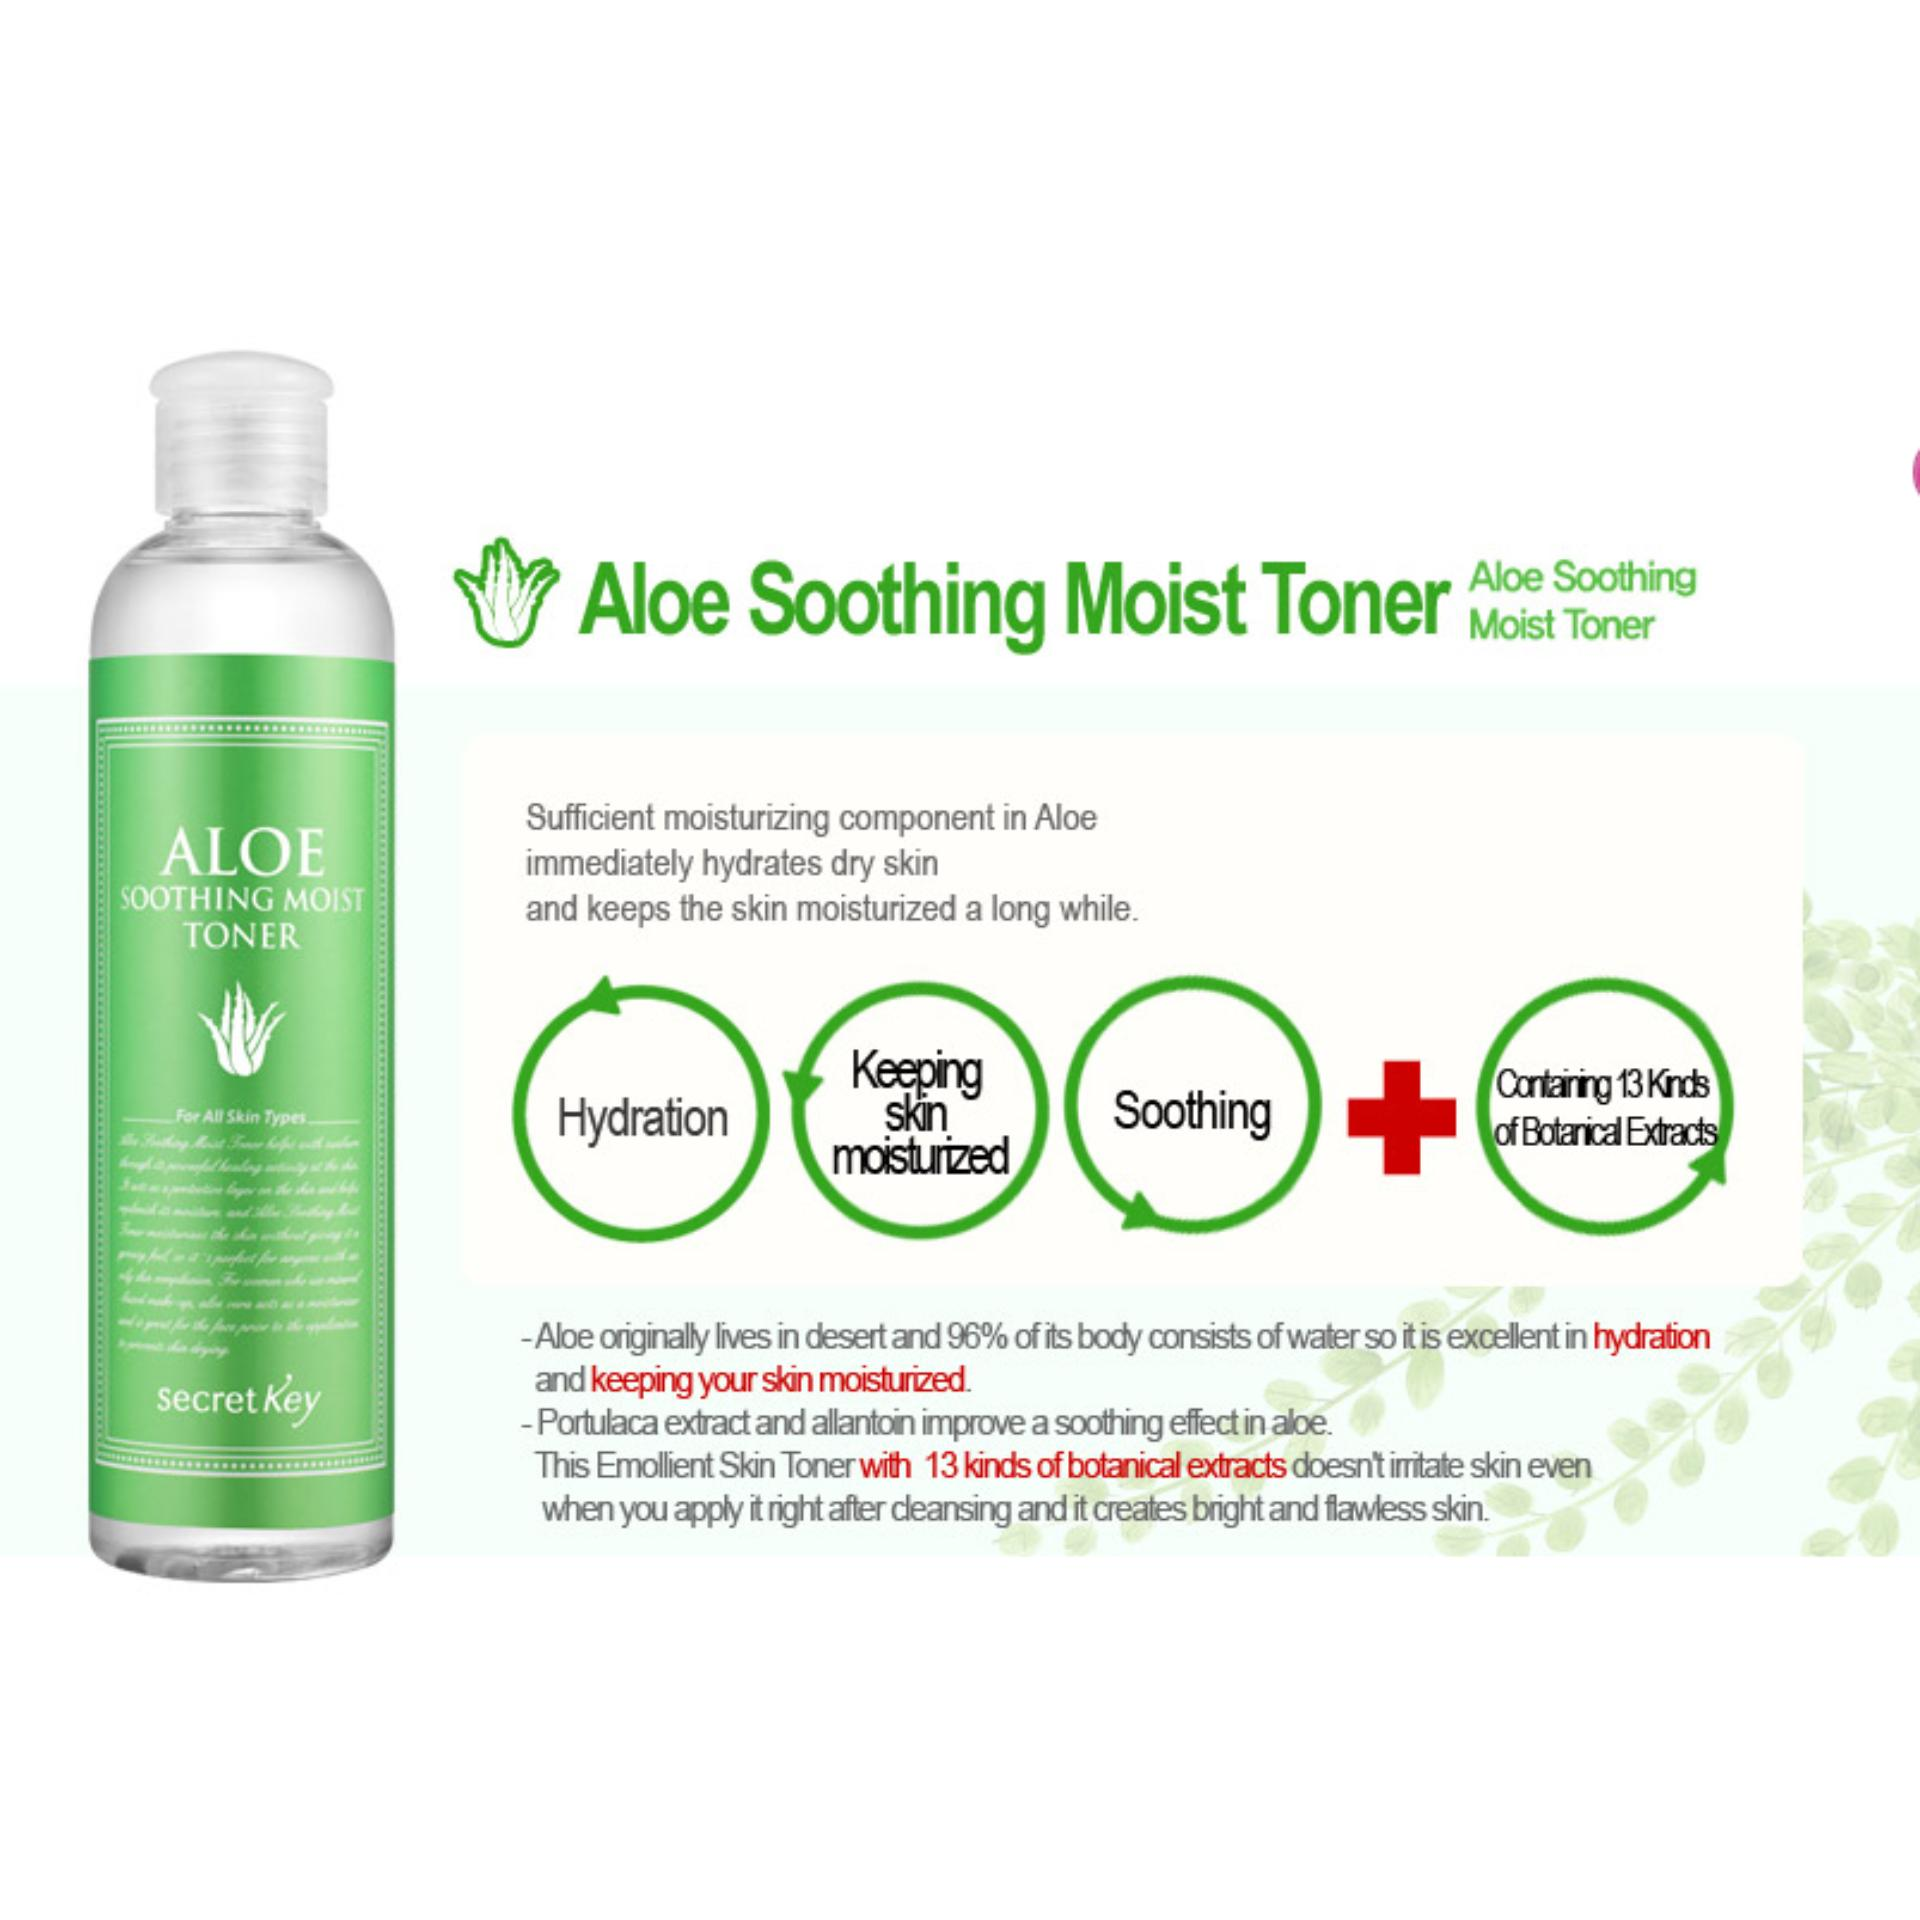 Sn M Km Nc Hoa Hng Dng Da Mm Mt Secret Key Aloe Fresh Toner 248ml Soothing Moist